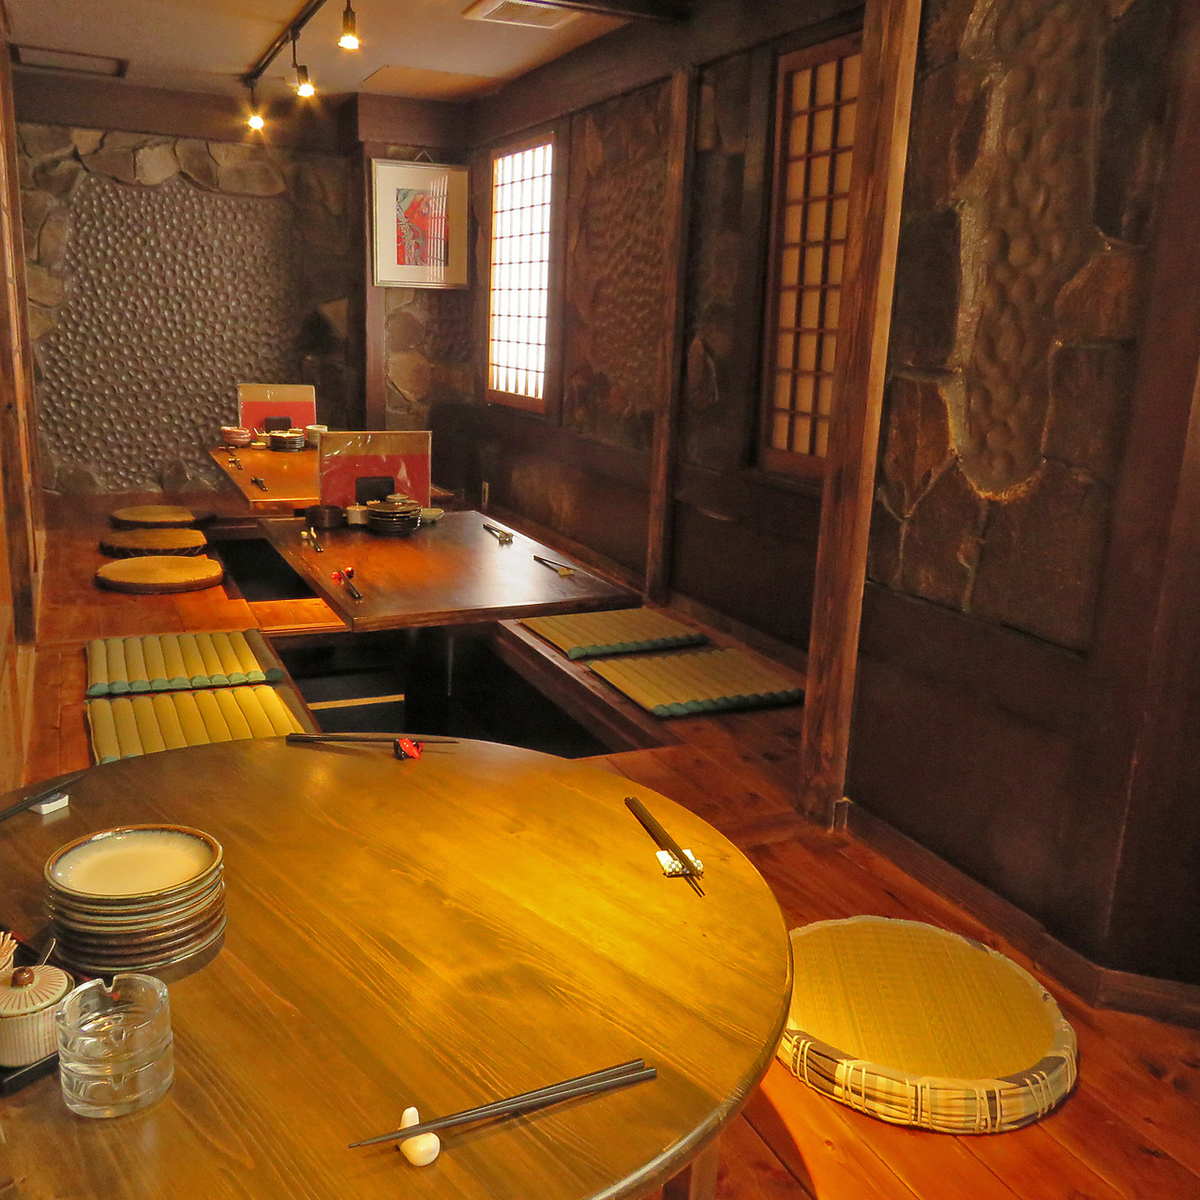 Osami private room is for 20 people ~ OK! It is a perfect space for banquets for adults ♪